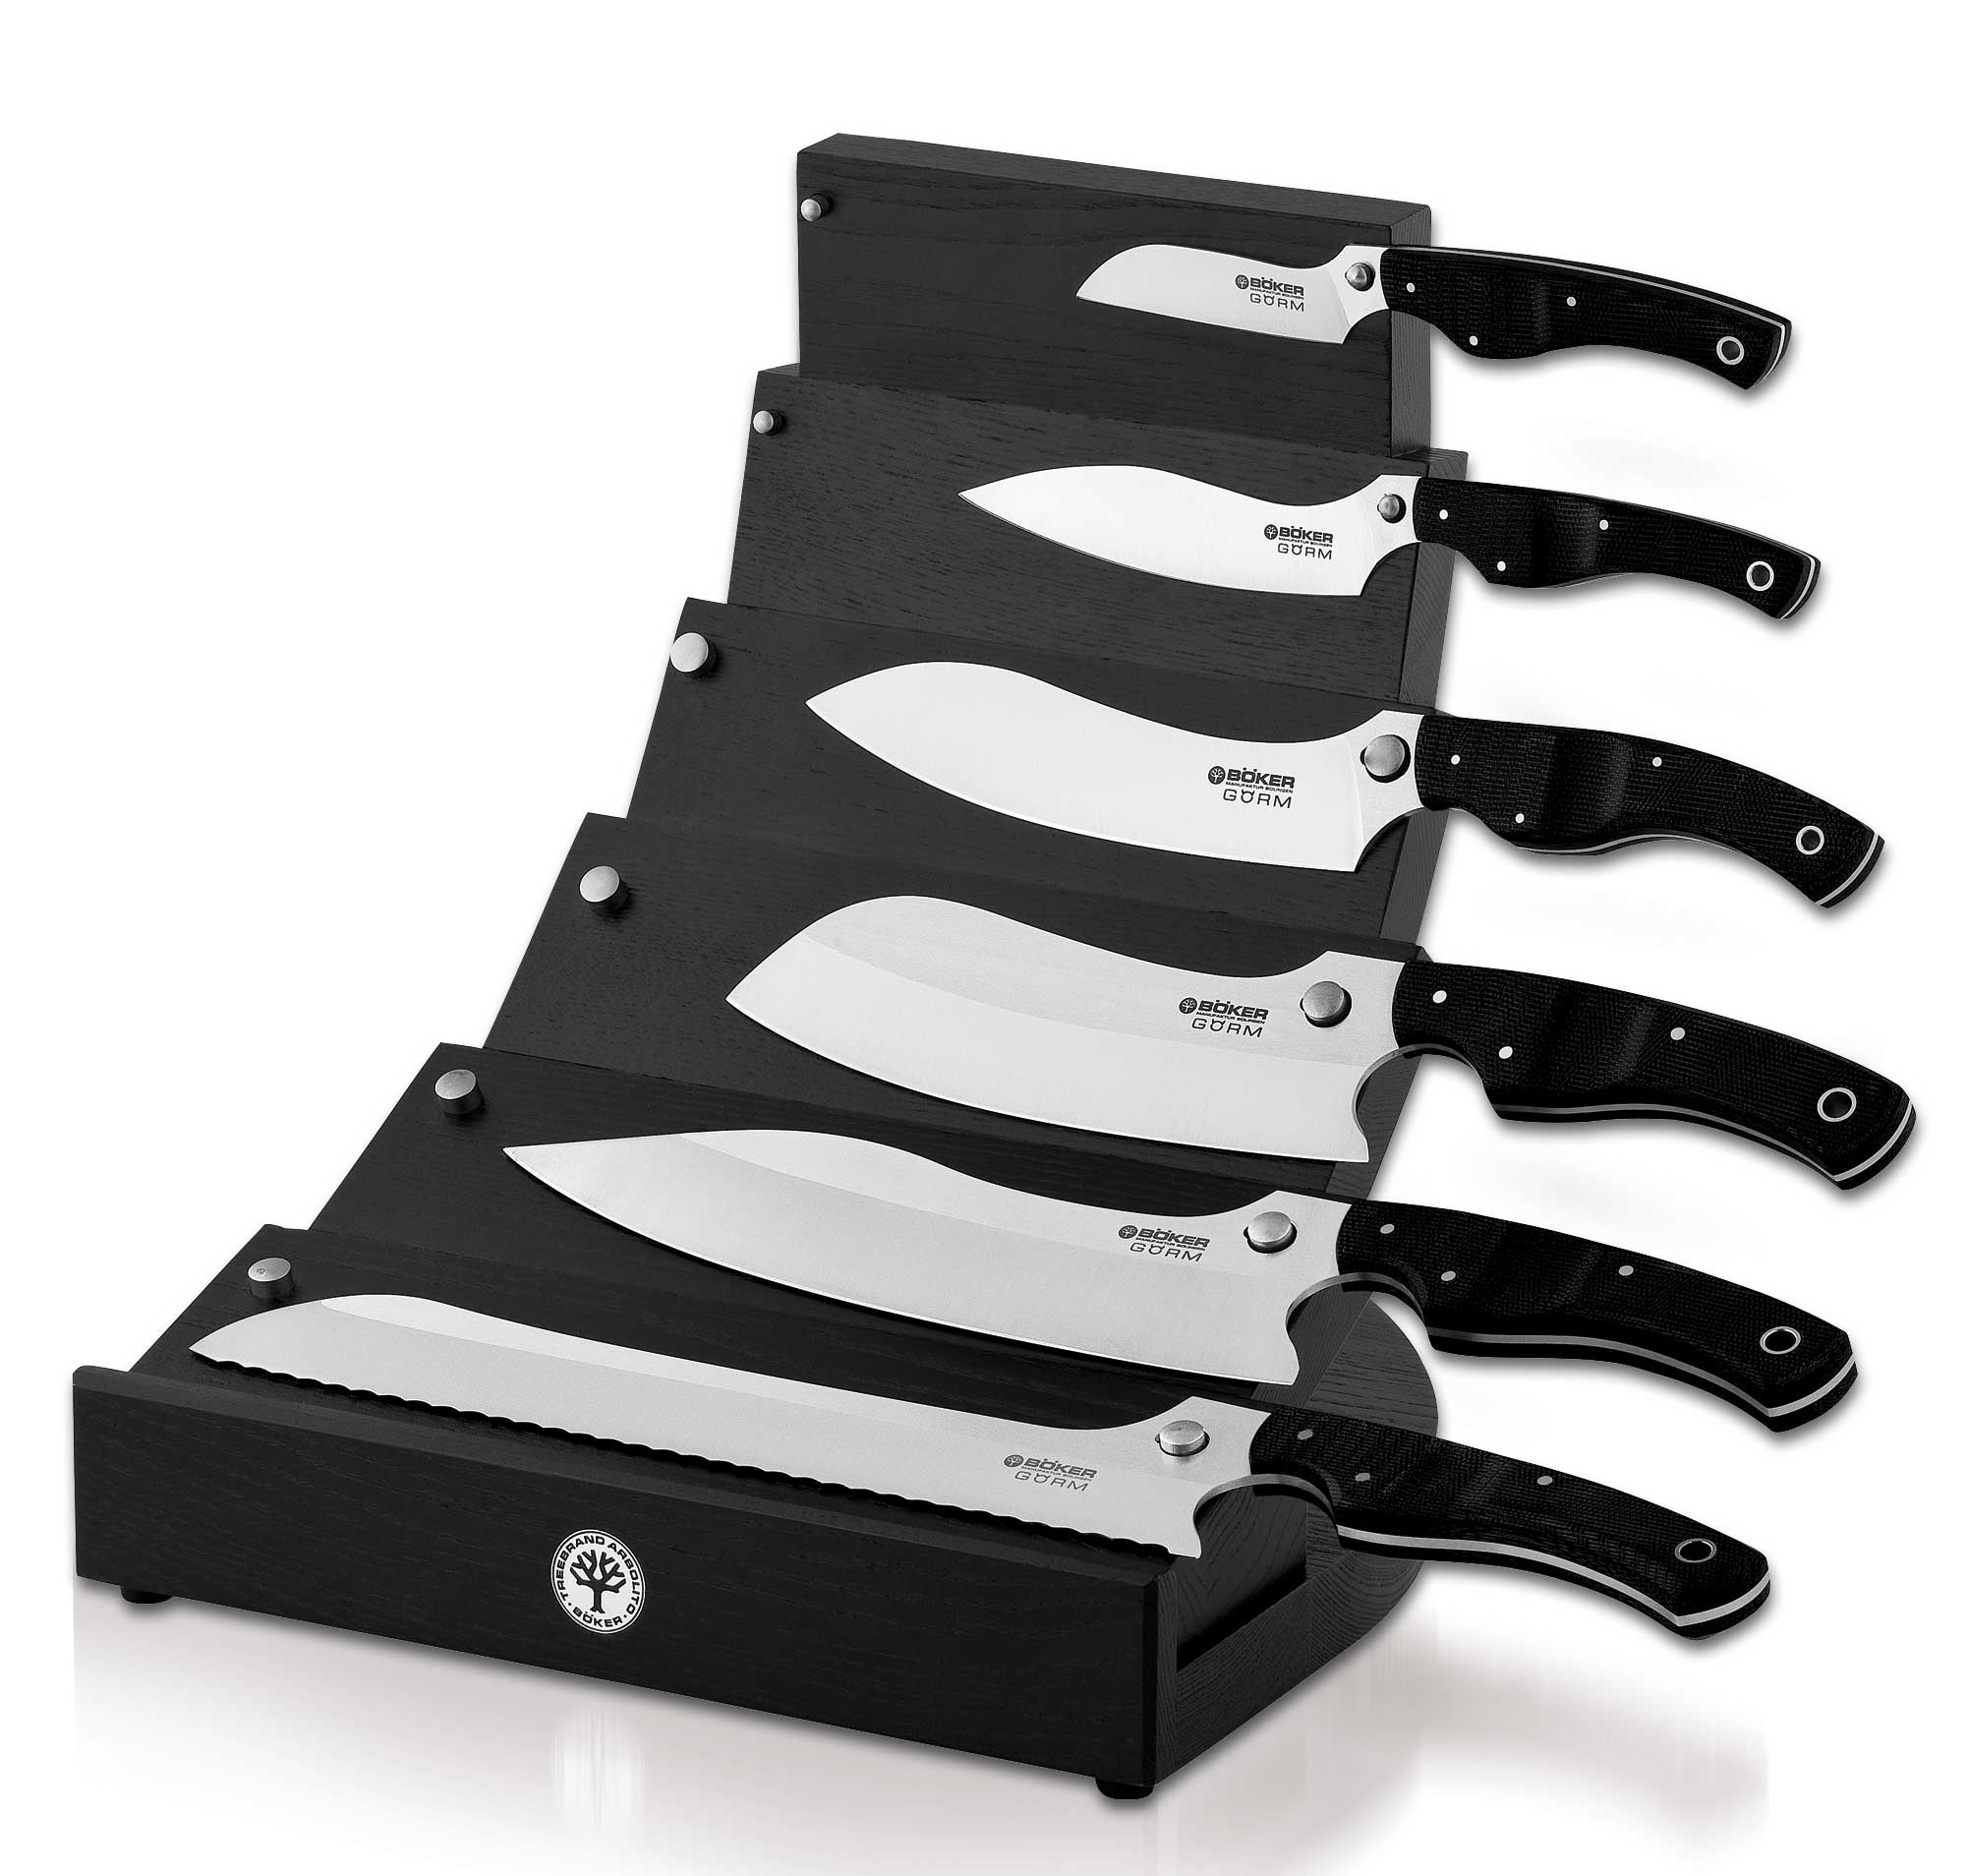 Permalink to Recommended Kitchen Knife Sets